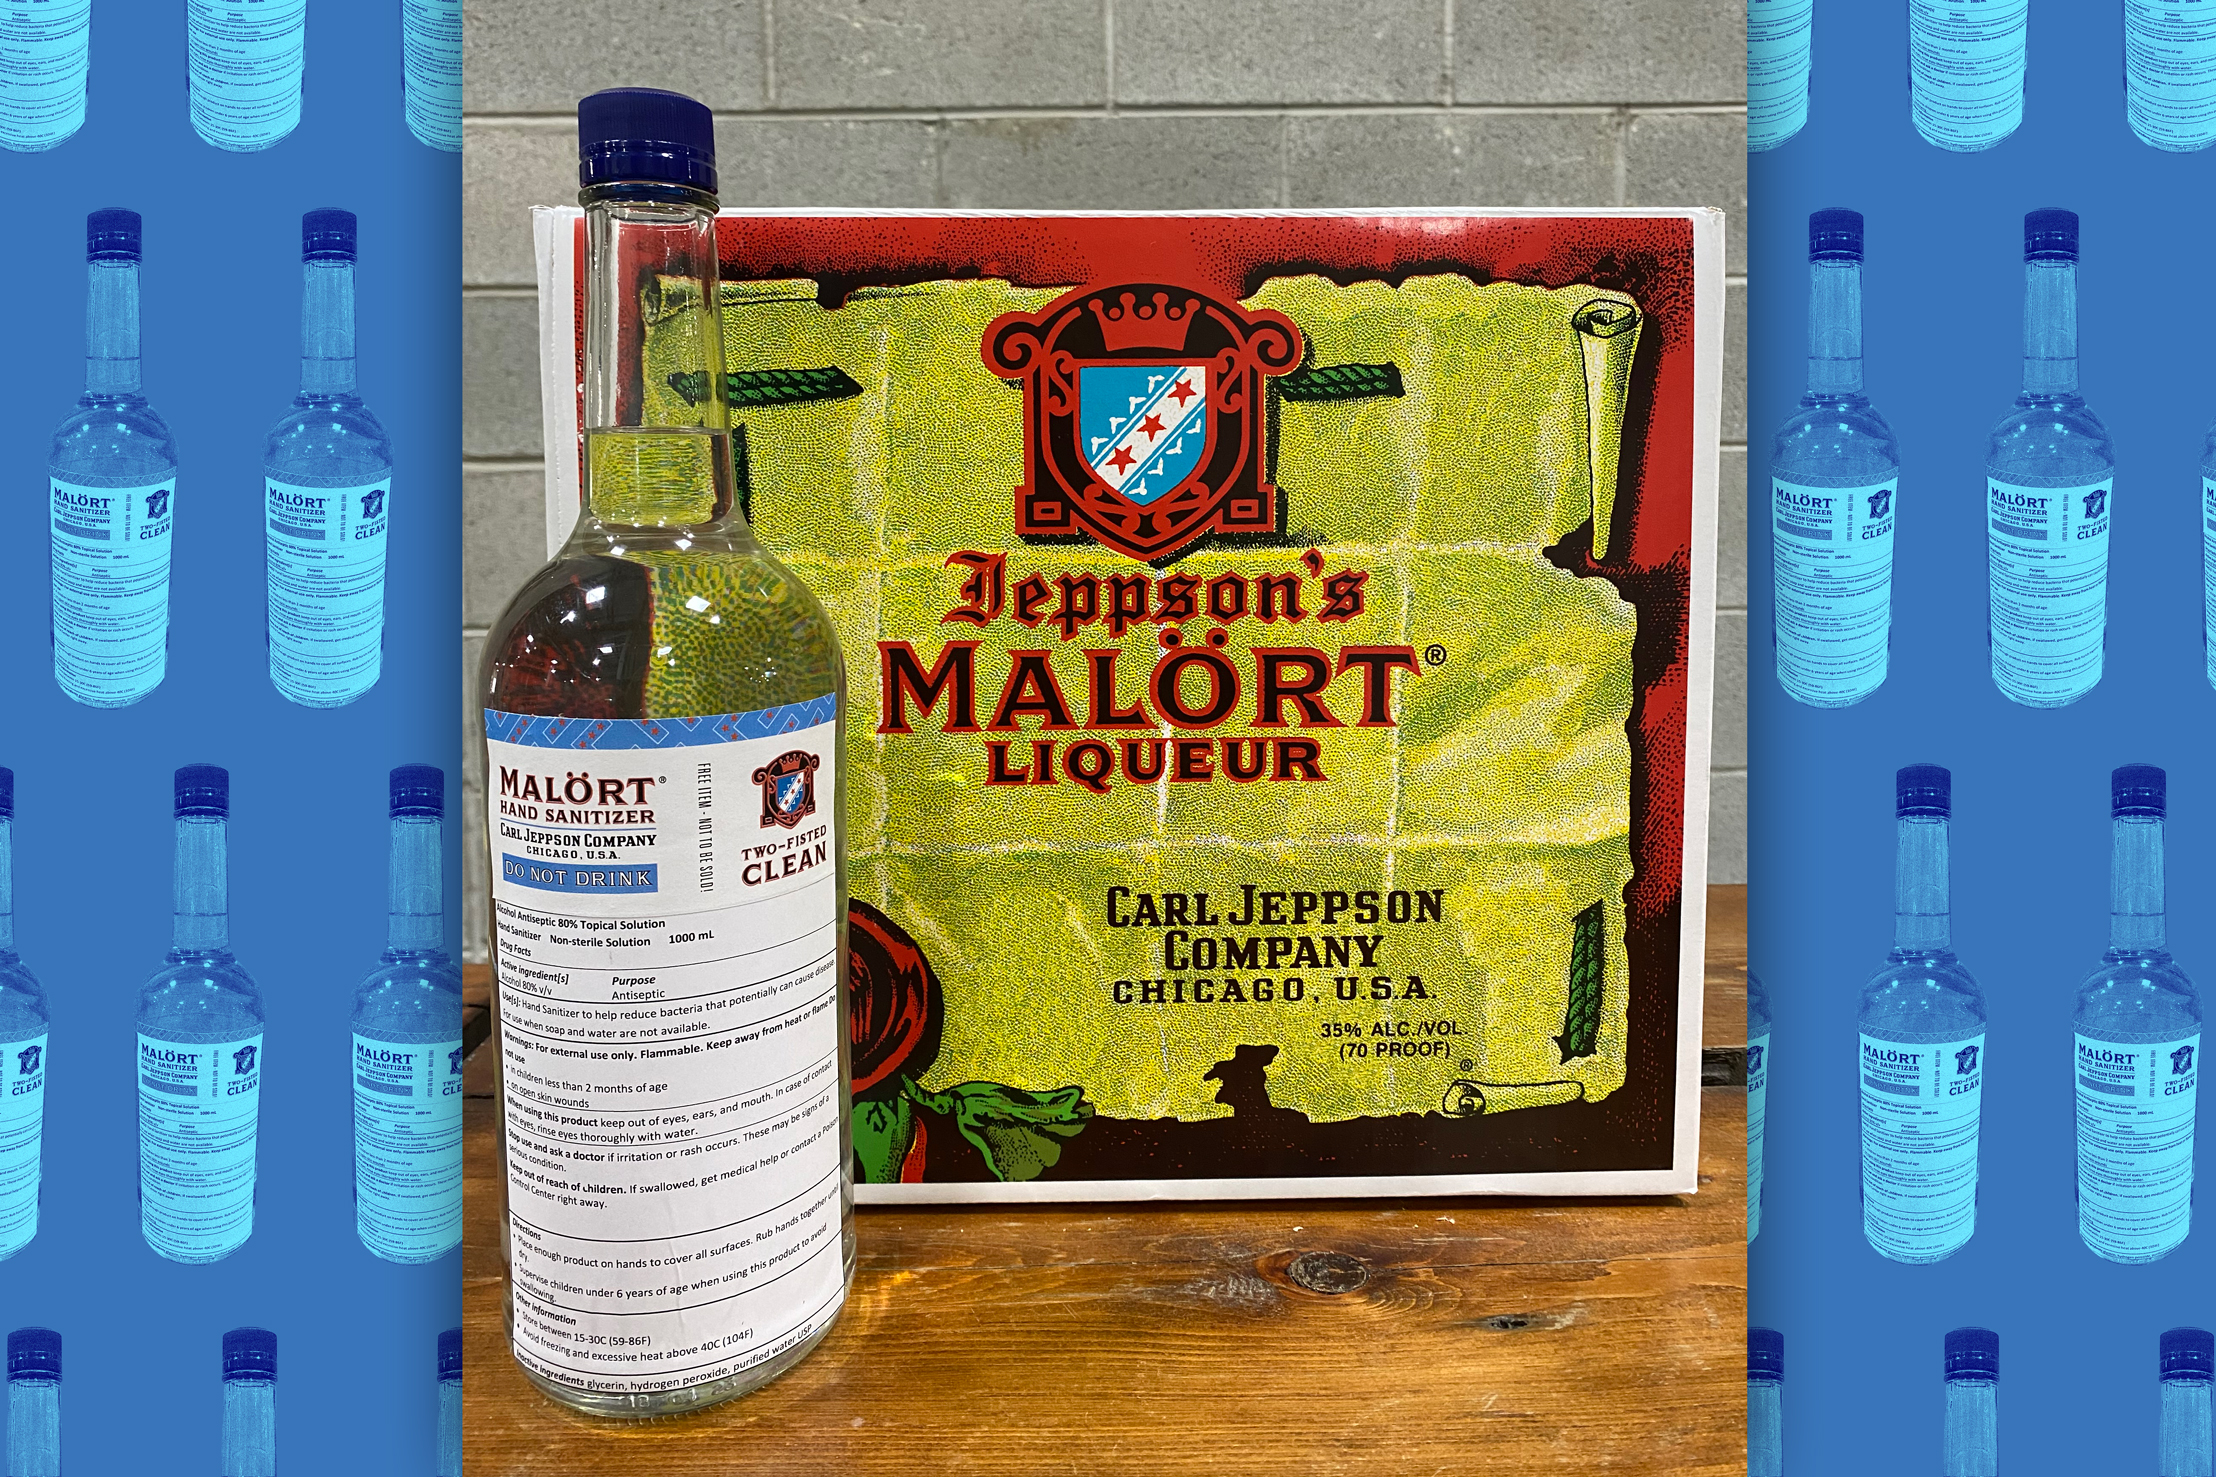 How Malört—a taste bud-killing classic Chicago shot drink—got into the hand sanitizer business